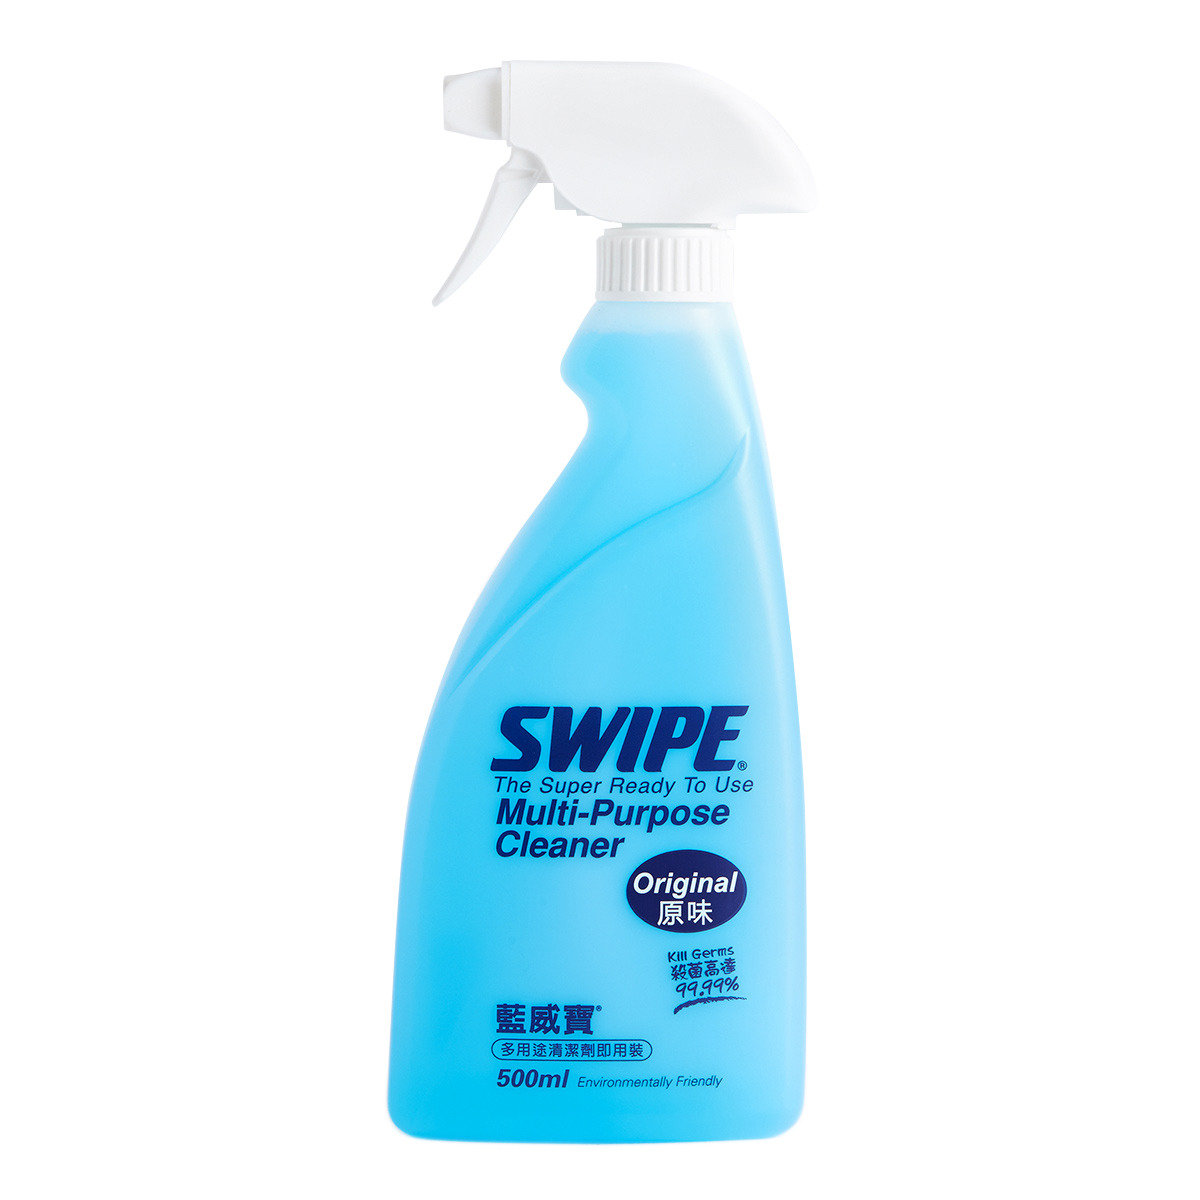 The Super Ready To Use Multi-Purpose Cleaner - Original